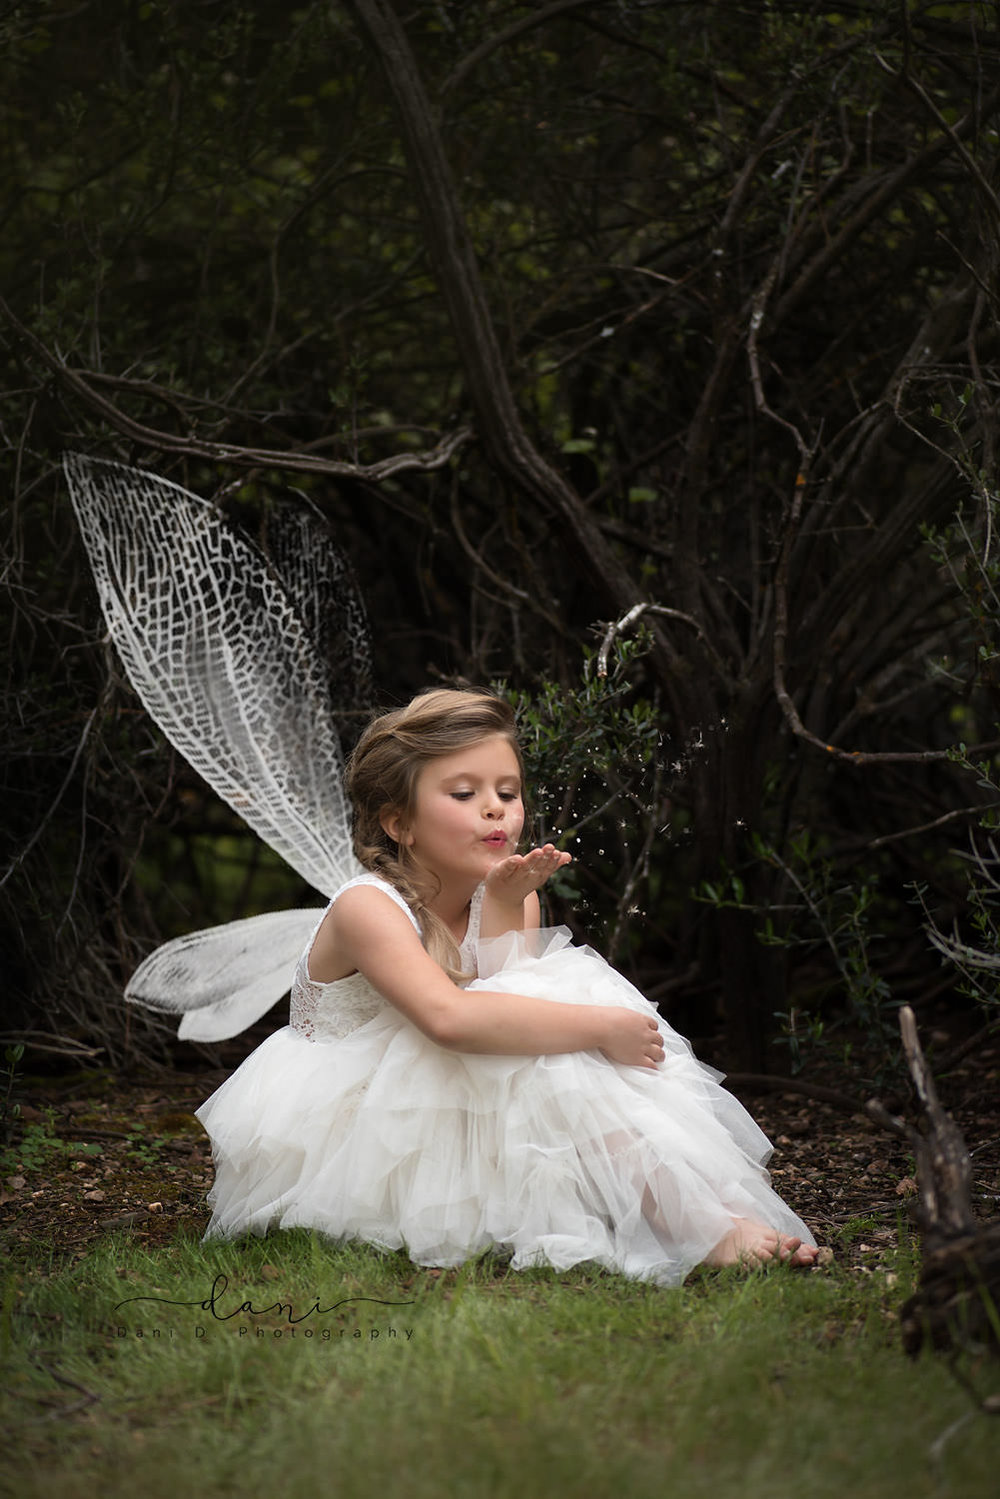 Young girl as a fairy - fantasy photography